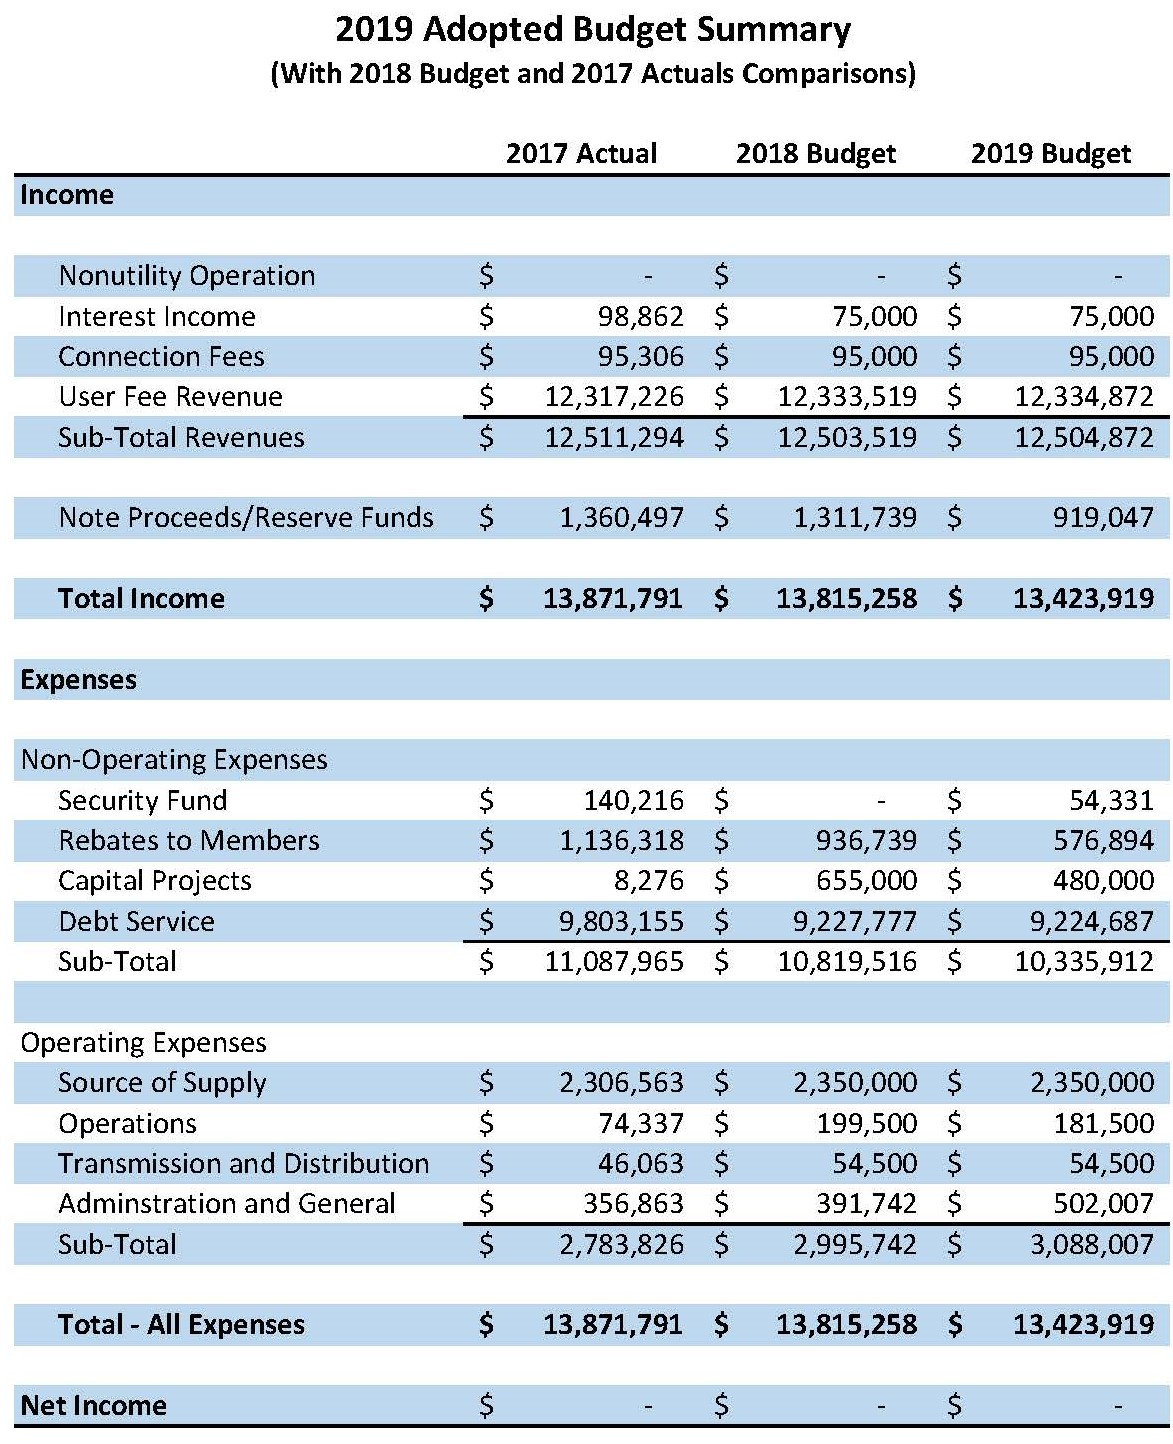 Budget Summary for Web_adopted 2019 cropped